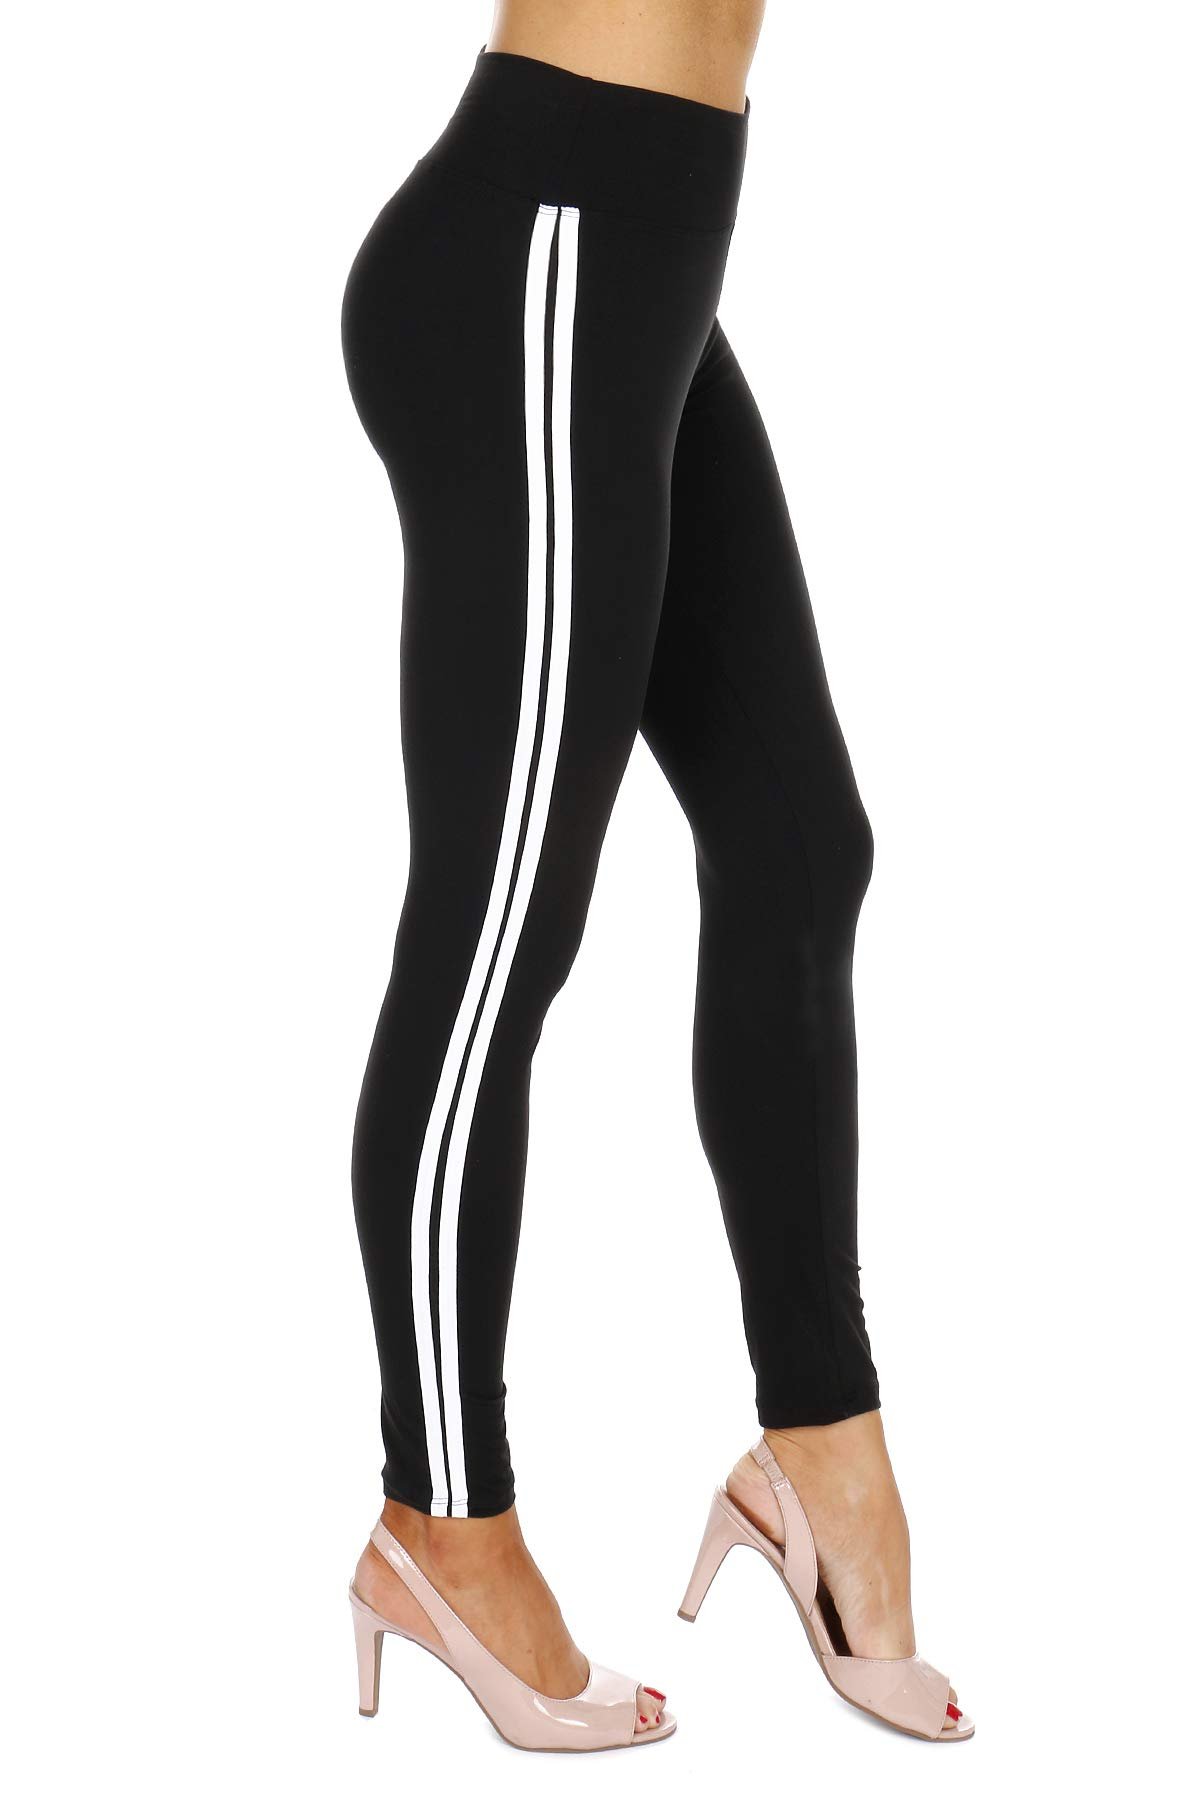 Most Comfort Fitted Stretch and 2-Stripes Activewear Jogger Track Leggings (One Size, Black)